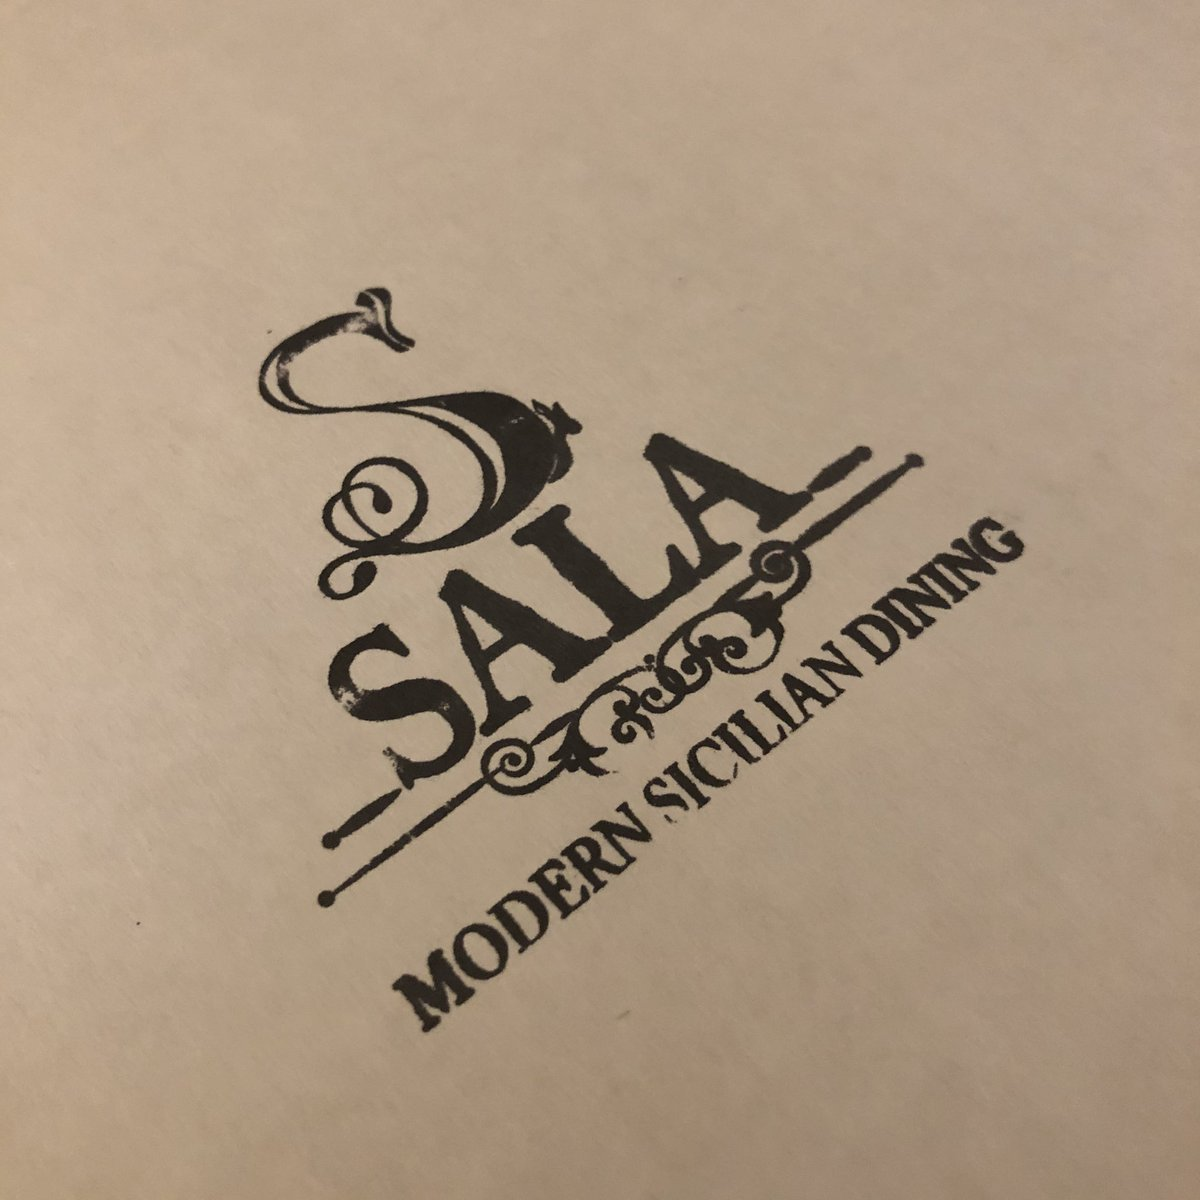 Ordered takeout from our favorite neighborhood restaurant @SalaDining tonight. 👌🧡 #supportsmallbusiness #mketogether